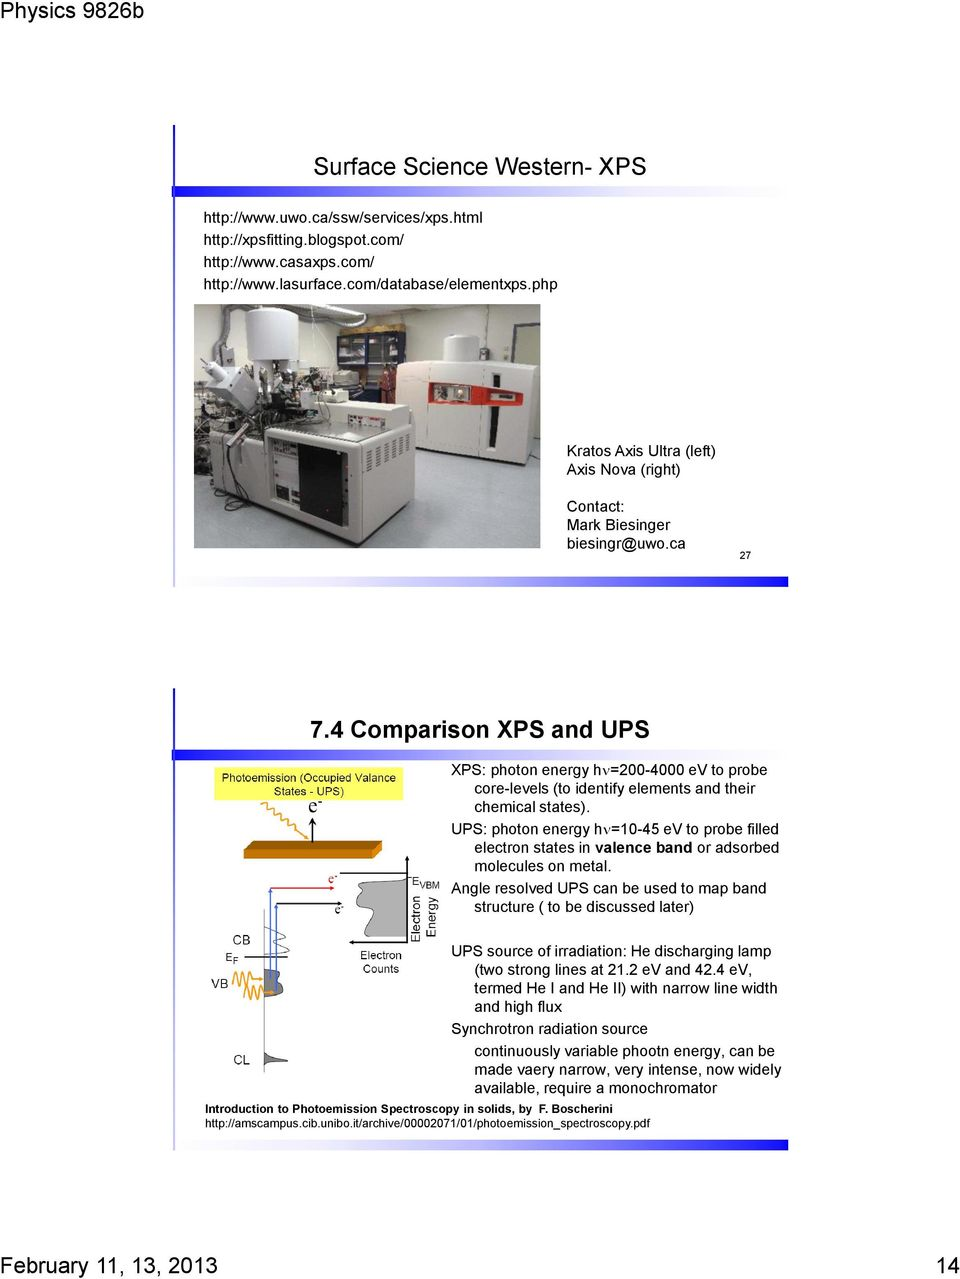 Lecture 7  X-ray Photoelectron Spectroscopy (XPS) - PDF